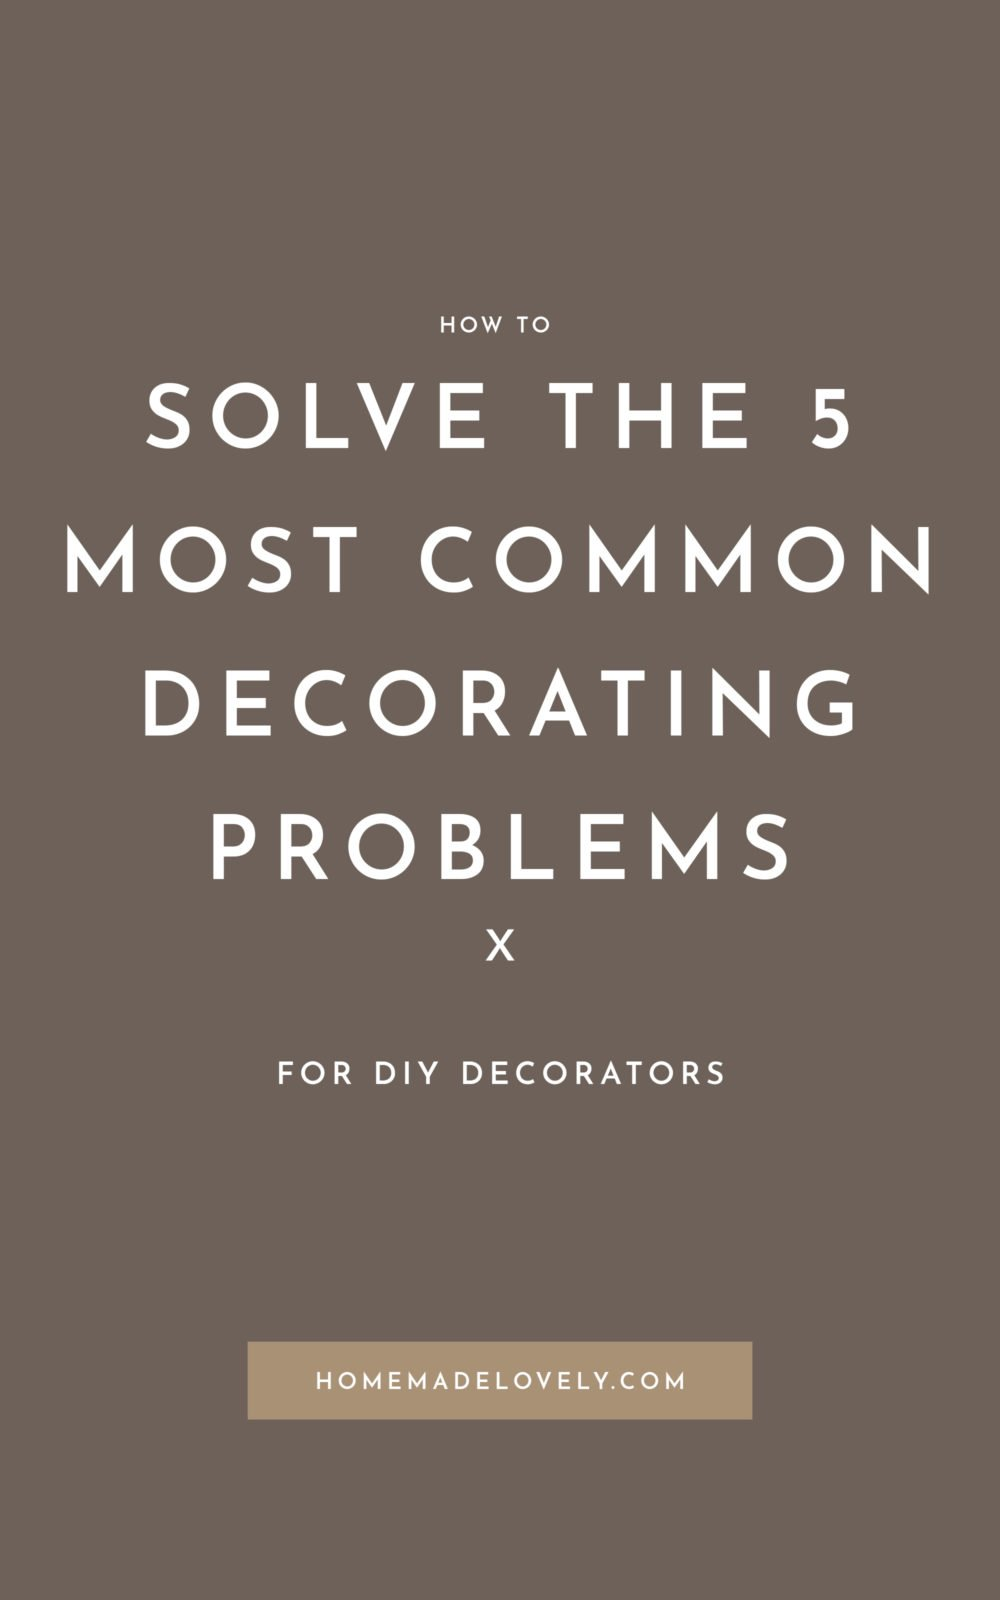 How to fix the 5 most common decorating problems in white text on beige background